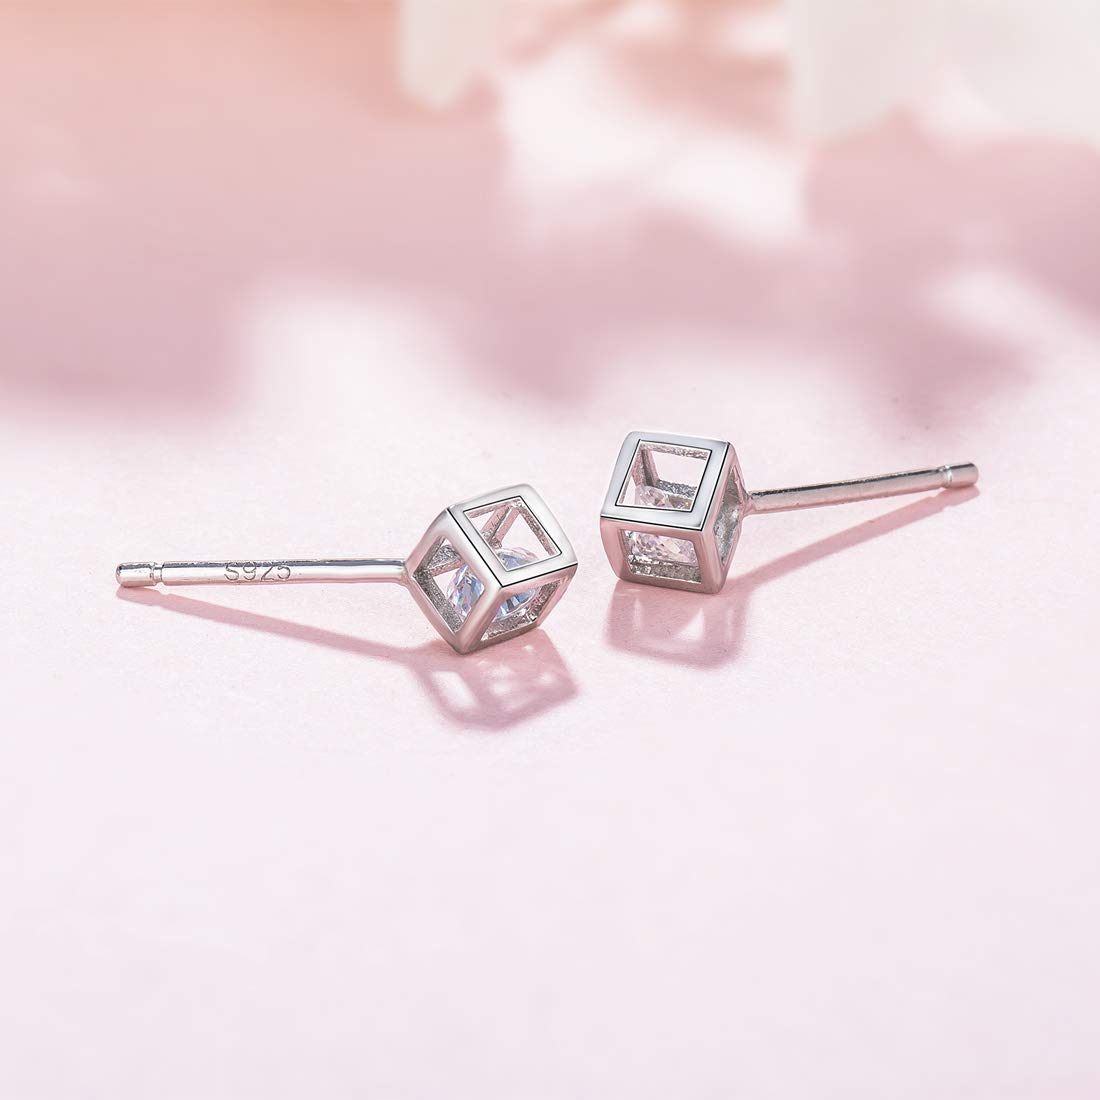 Professional Sale 0.4cm Diamante Silver Plated Stud Earrings 100% High Quality Materials Jewellery & Watches Earrings